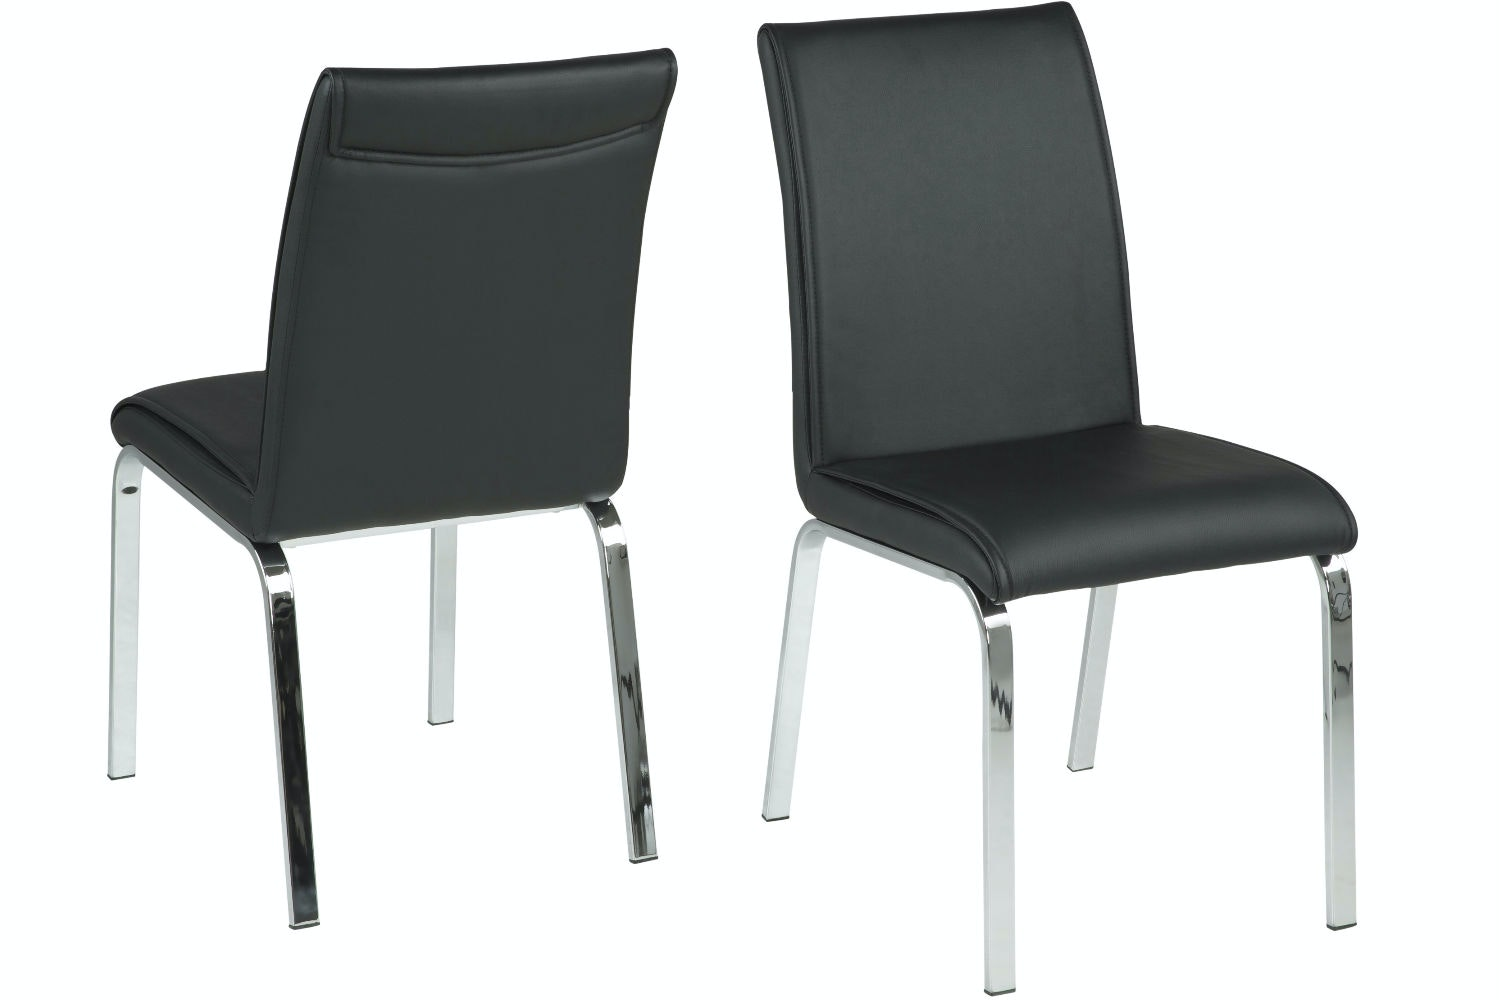 Lennox 5 Piece Dining Set | Leonora Dining Chairs